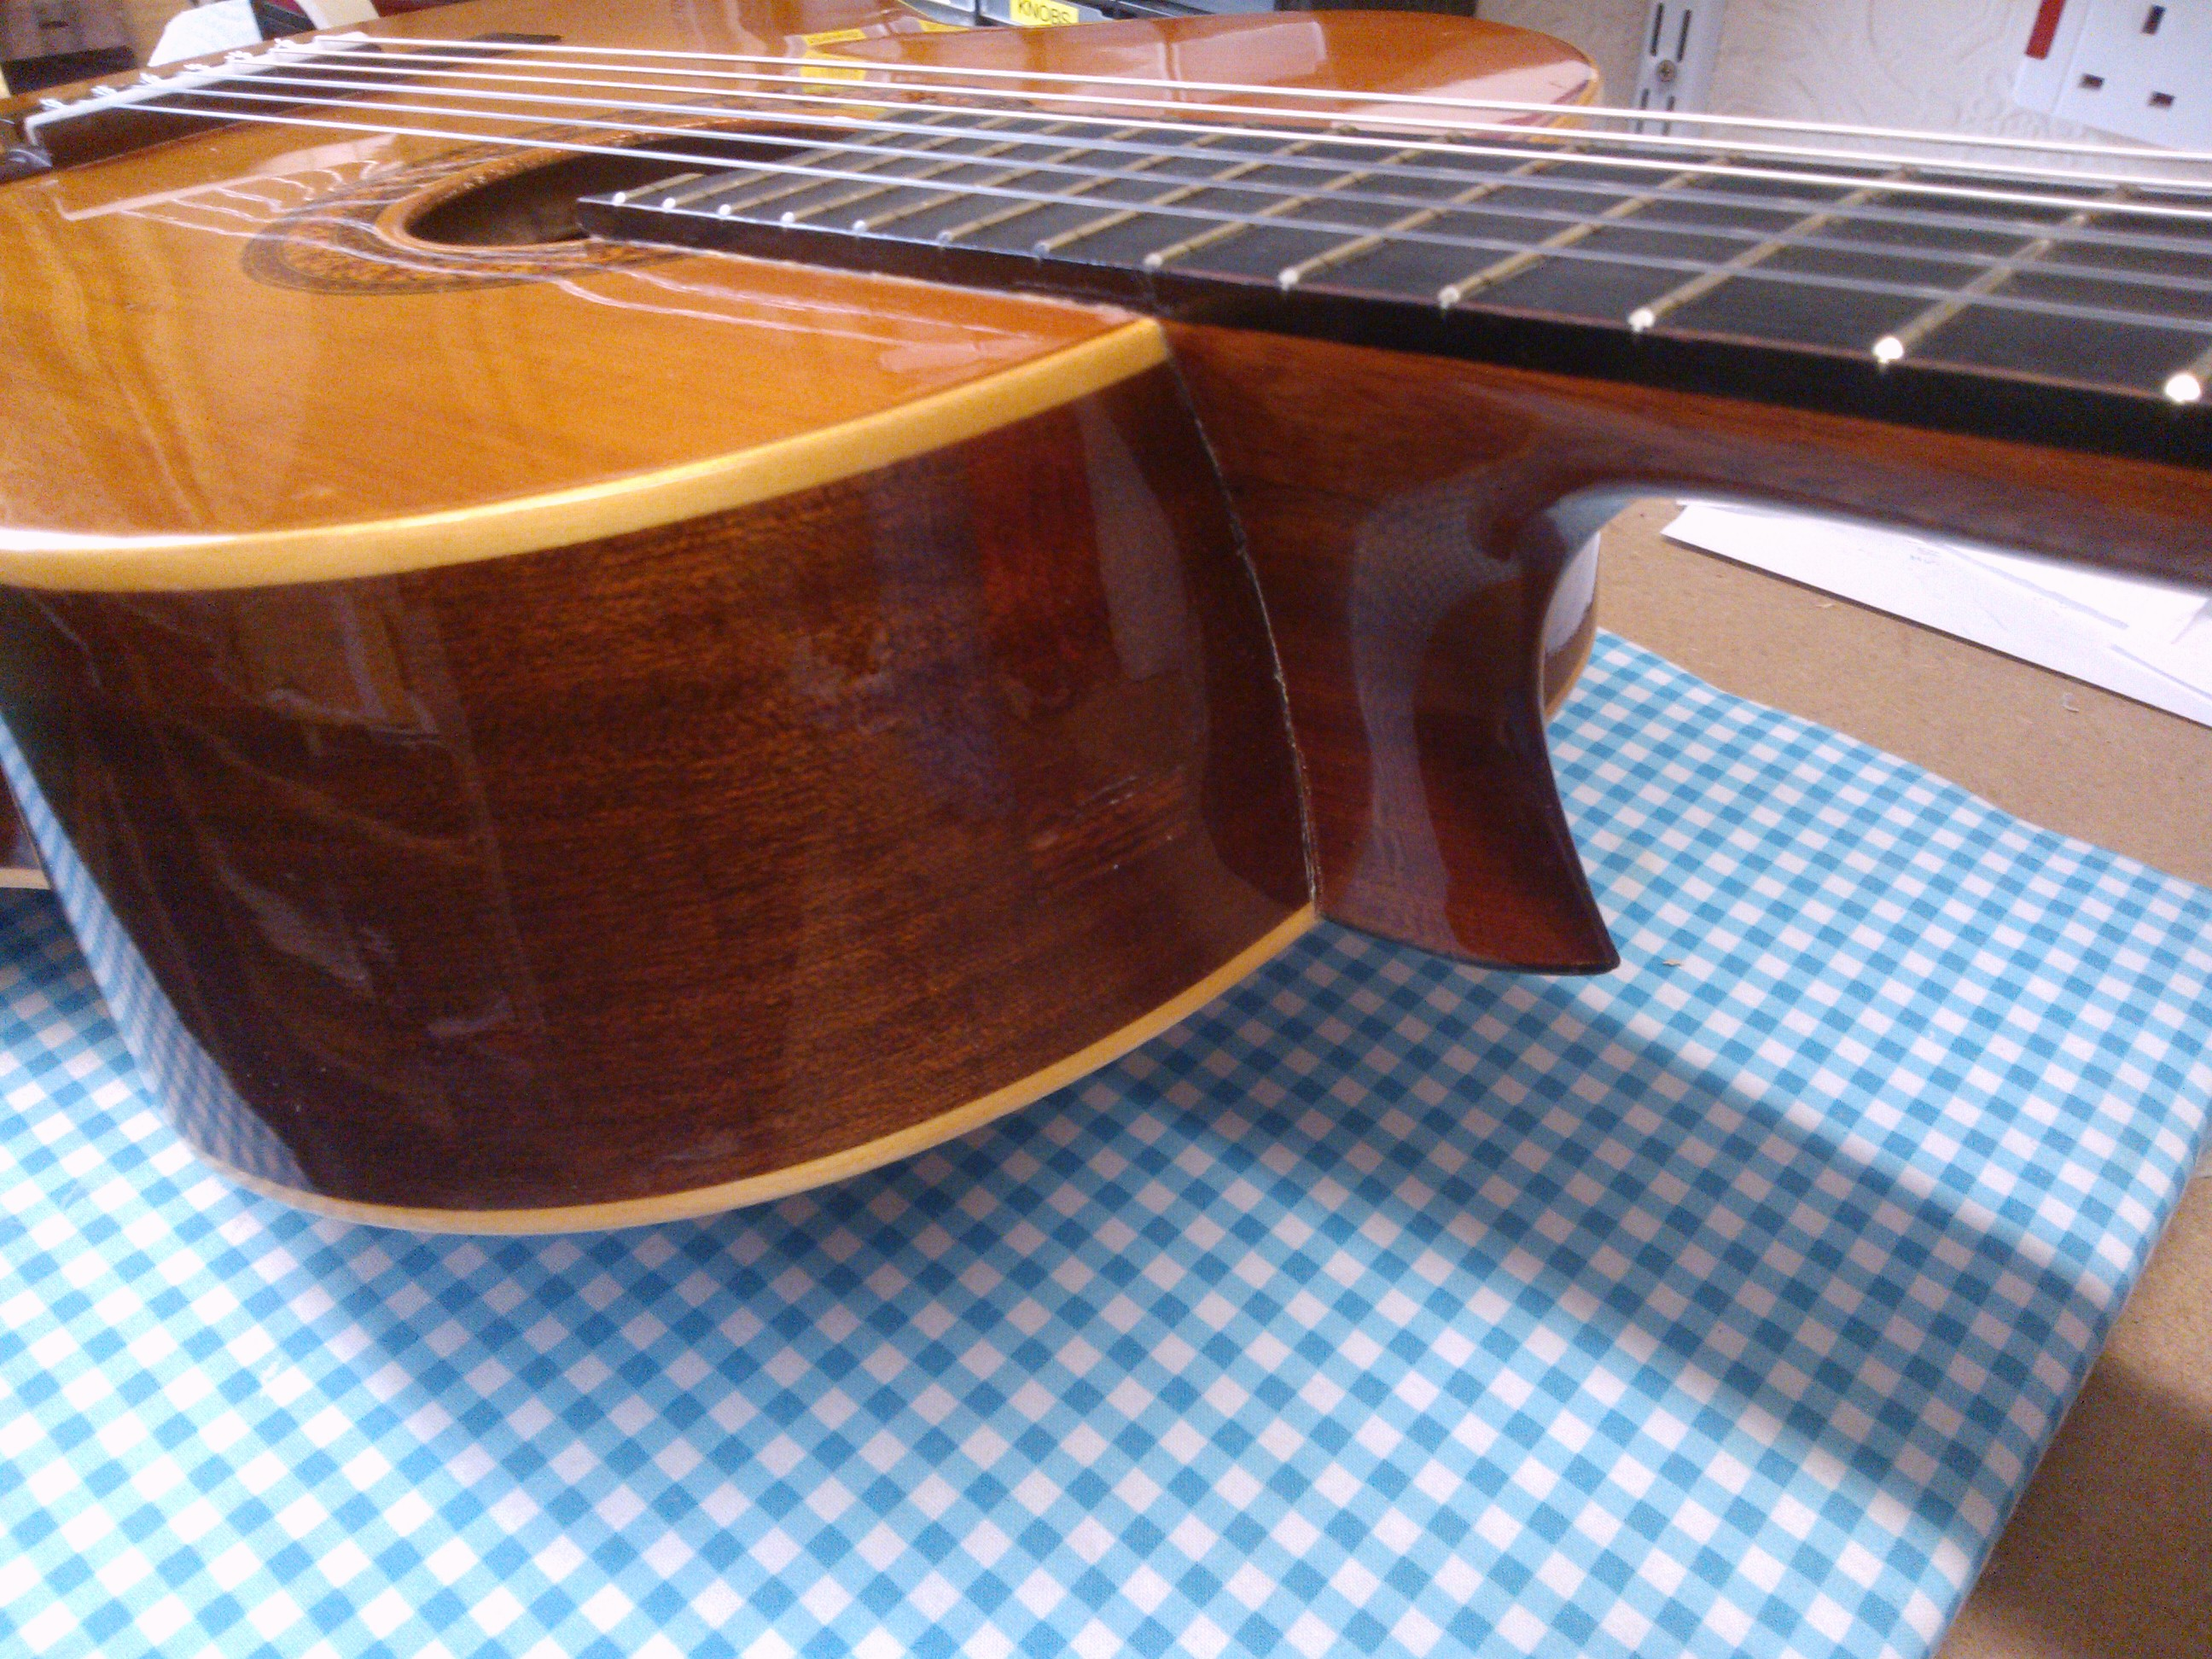 Acoustic Guitar Repair Archives - Page 3 of 3 - Guitar George